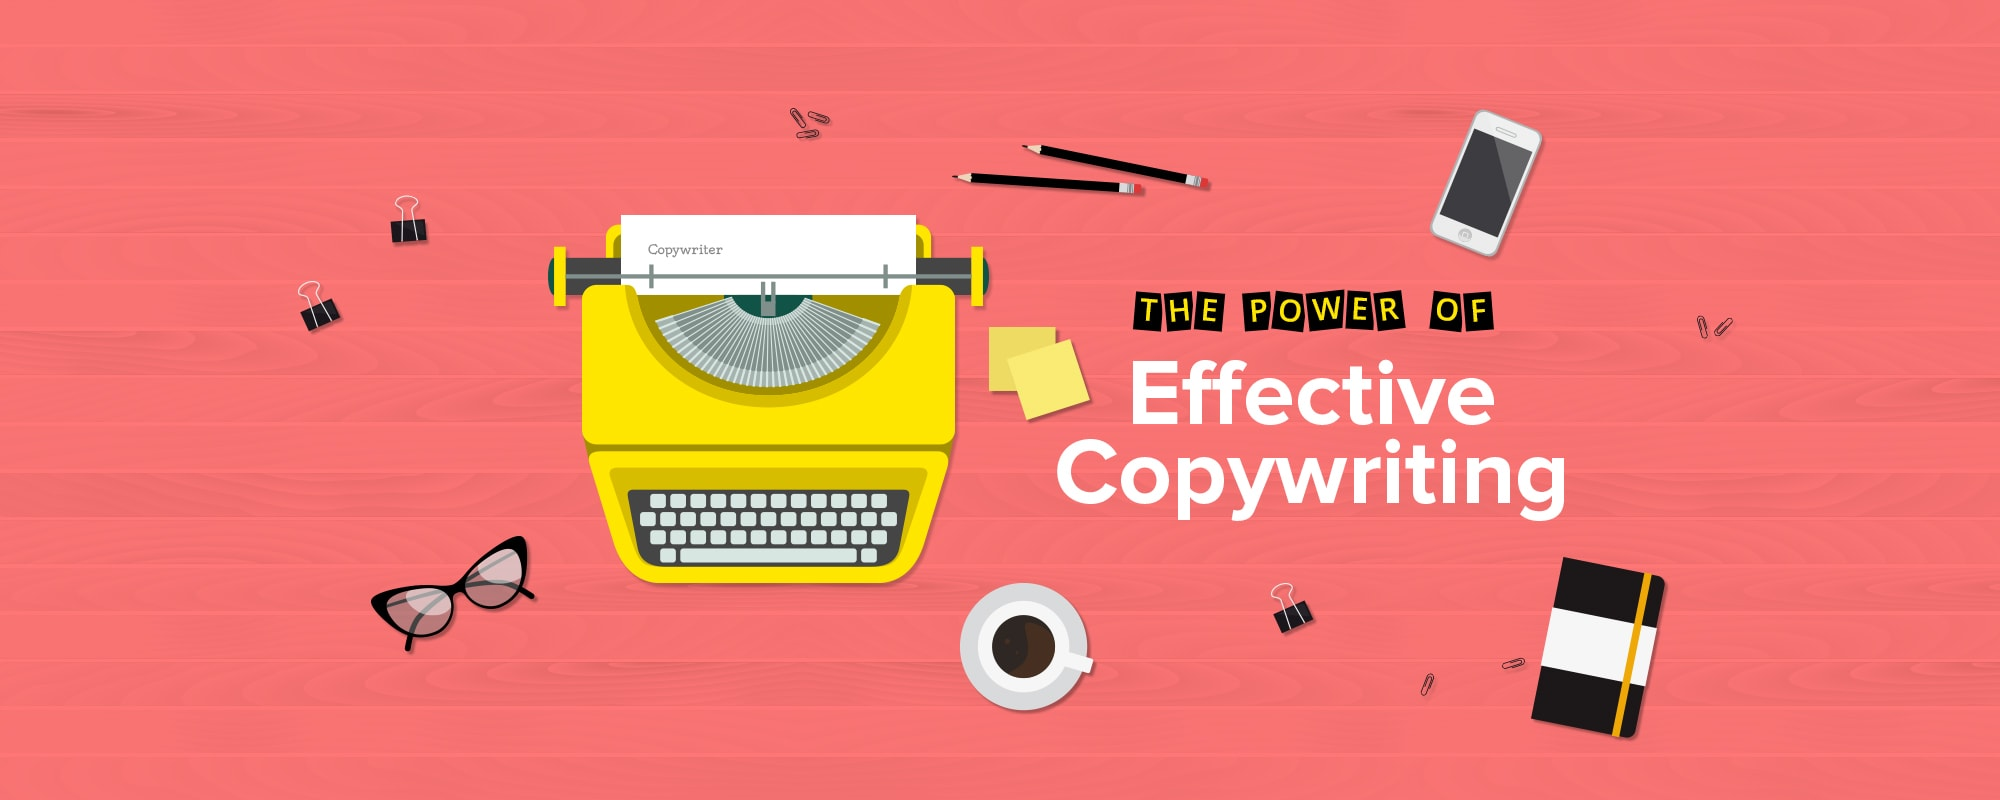 Gamify Copywriting To Detach Buyers' Resistance And Win Sales